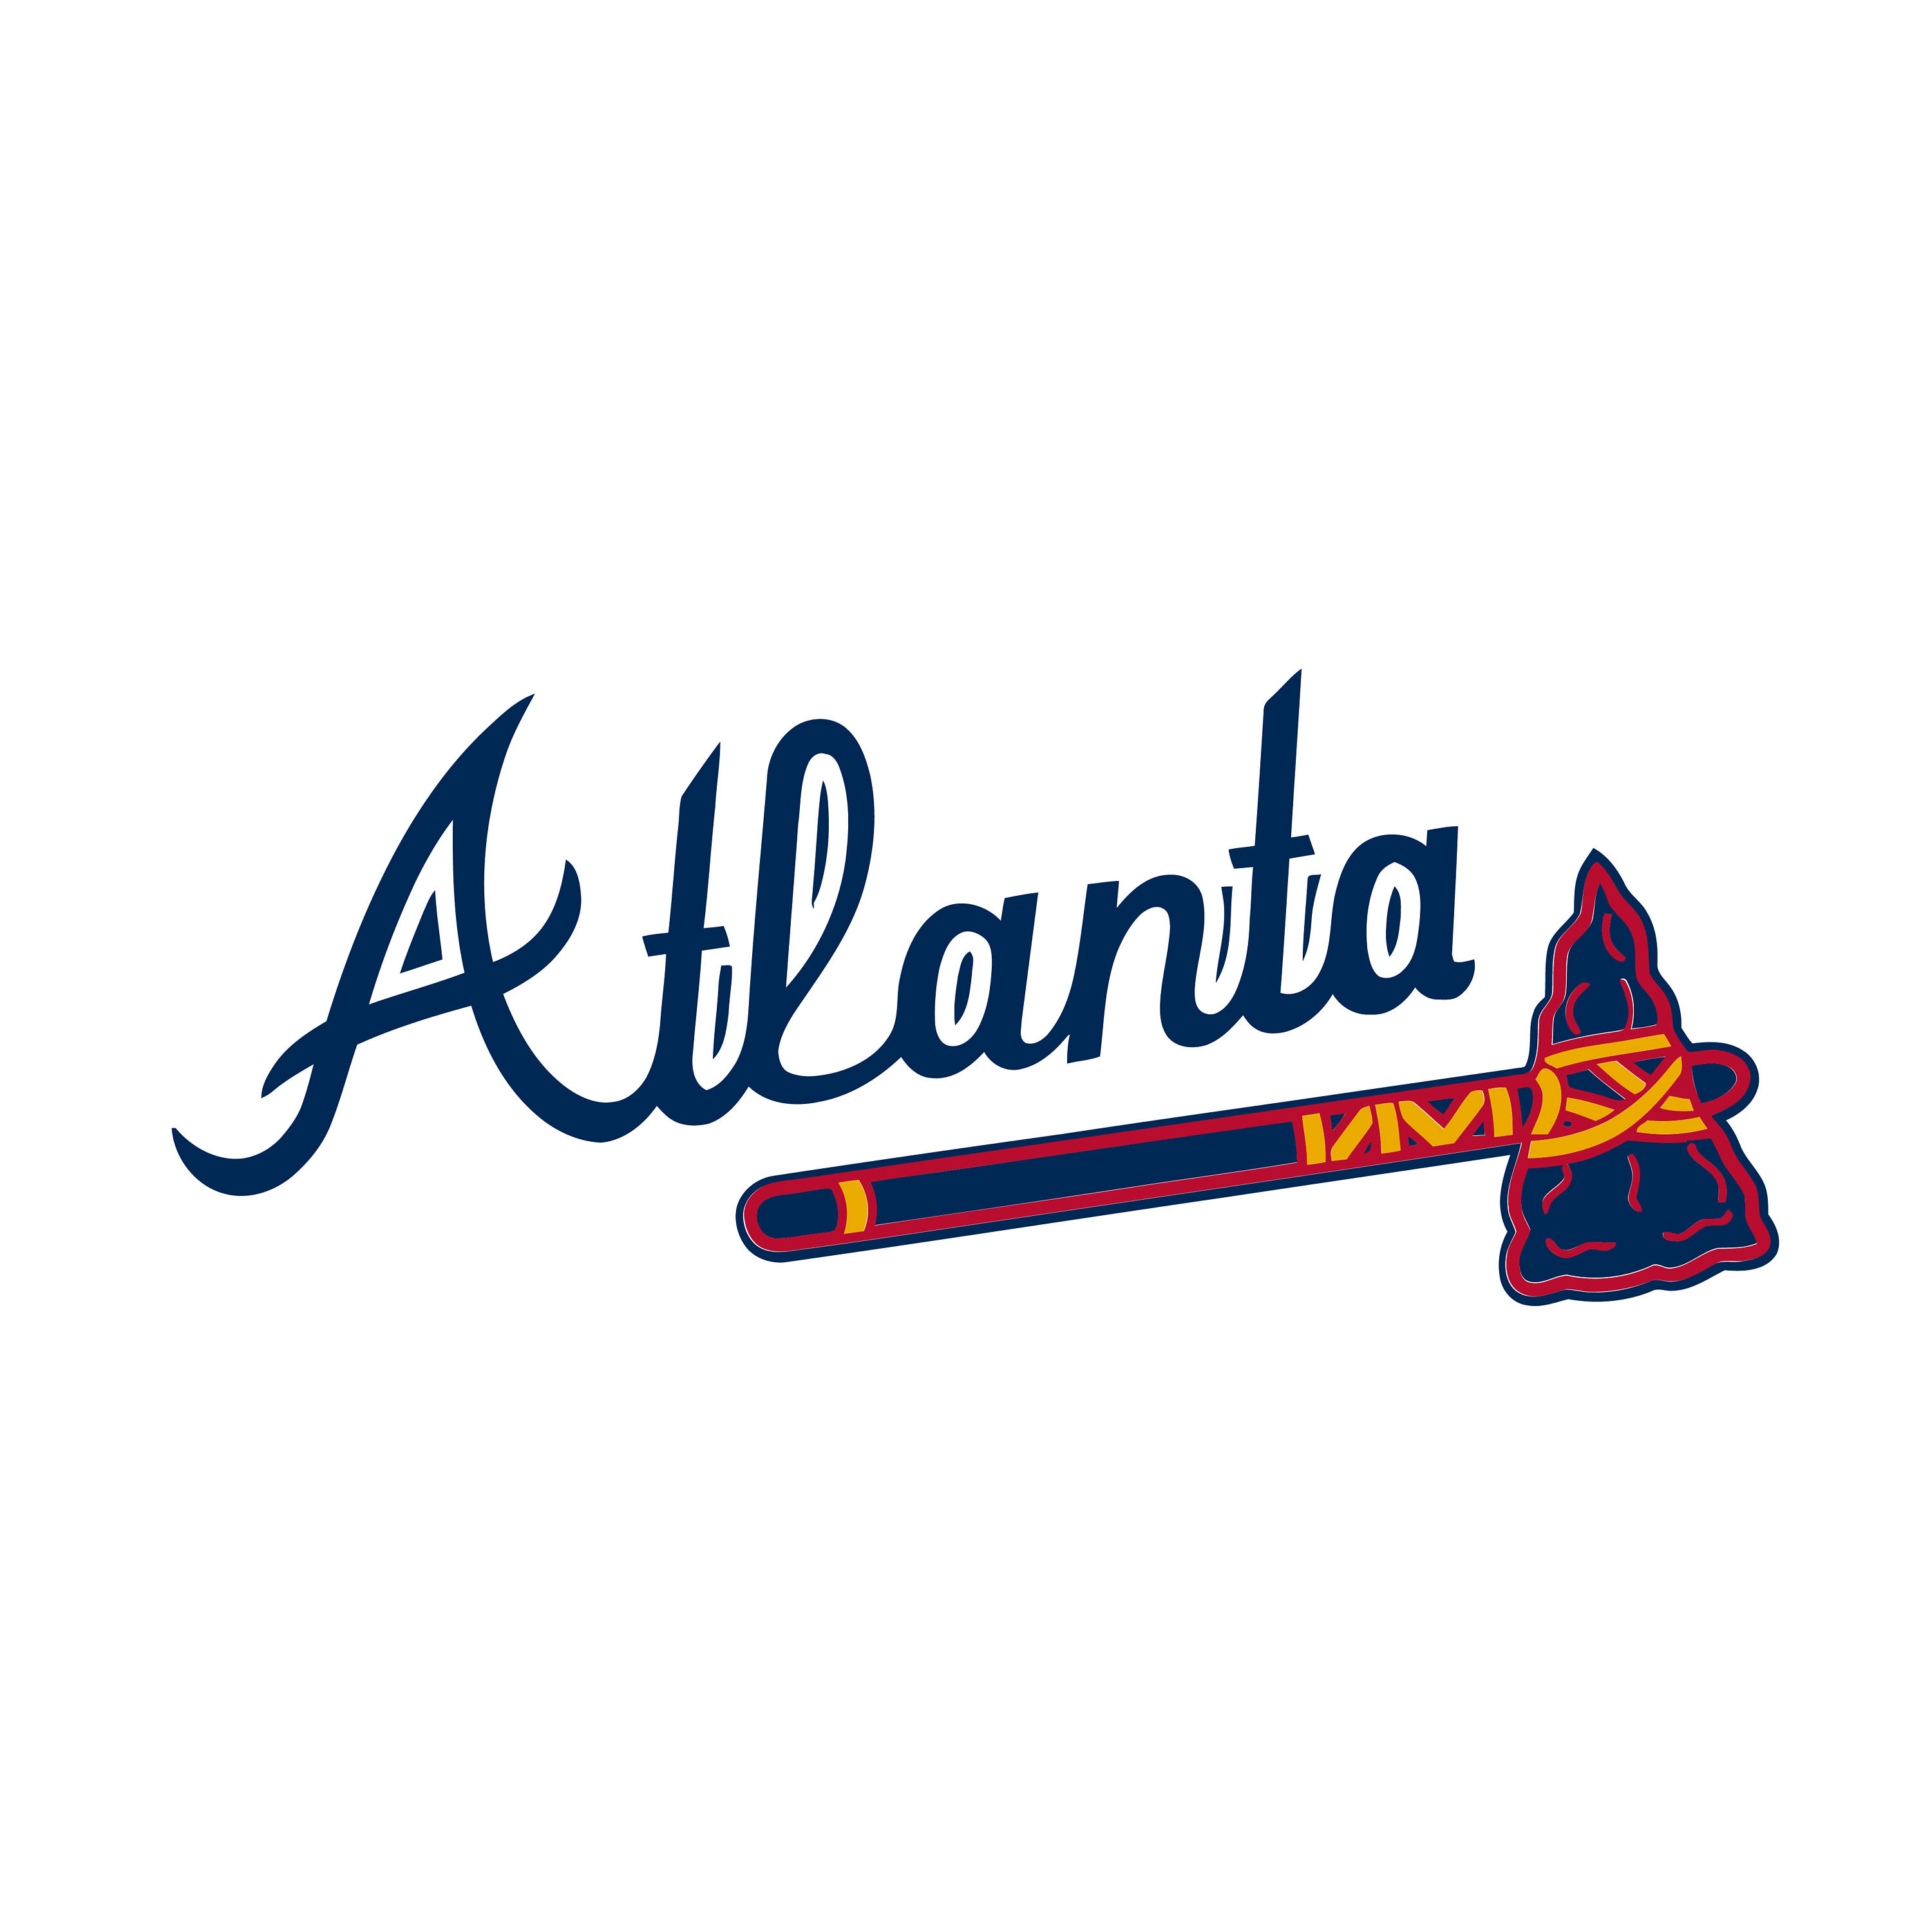 Atlanta Braves Logo Images | Free download best Atlanta Braves Logo